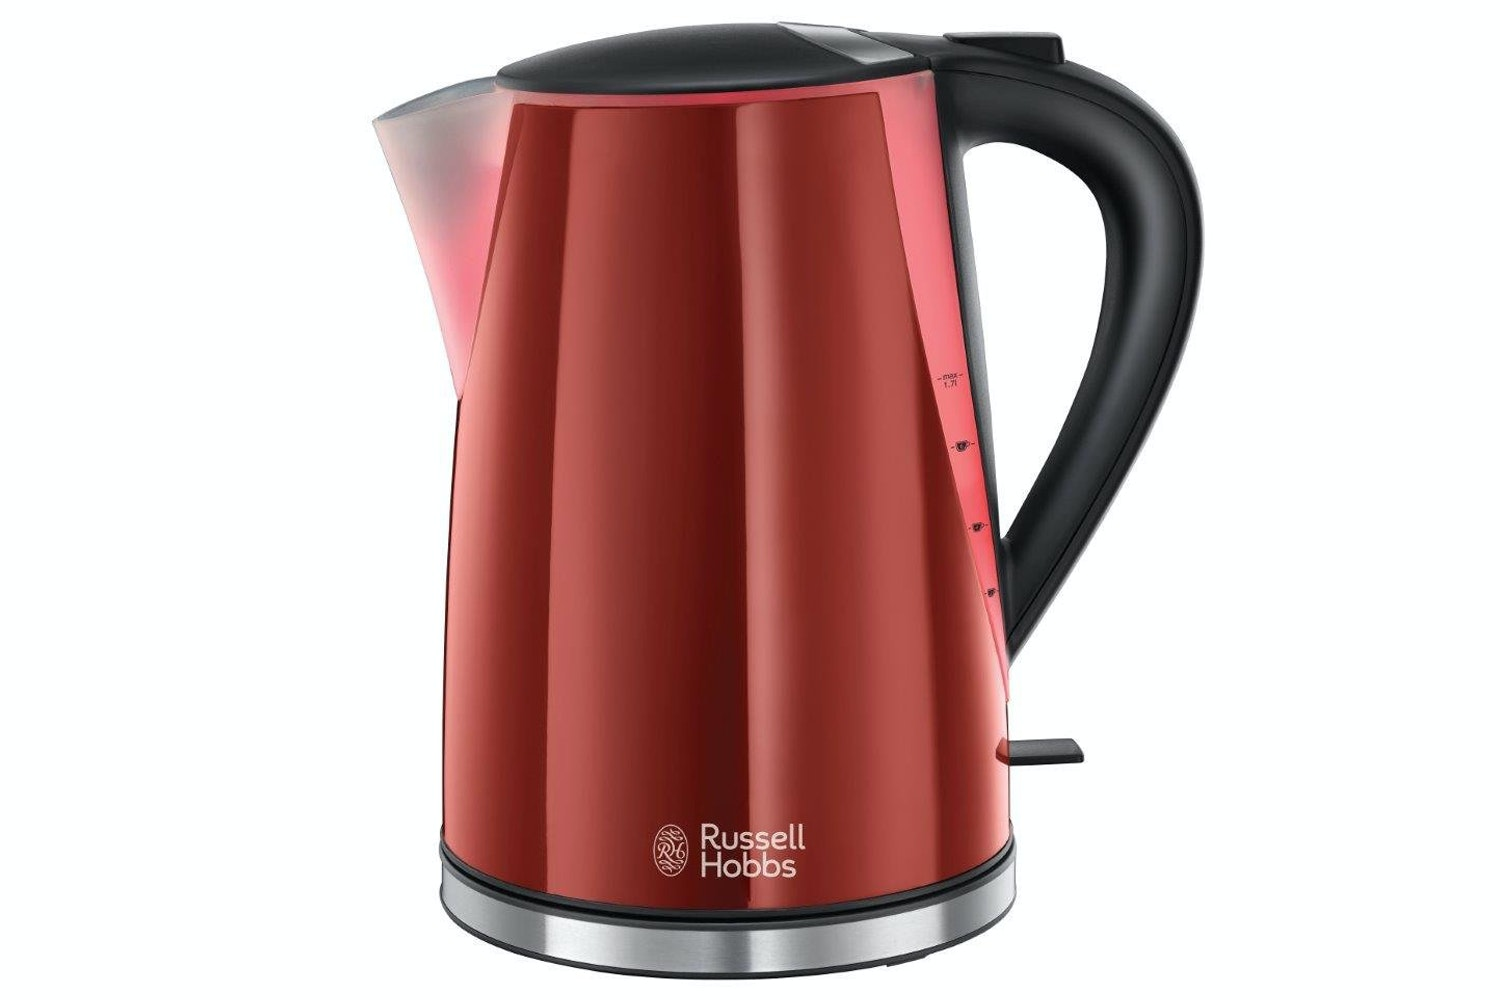 Russell Hobbs 1.7L Mode Kettle | Red